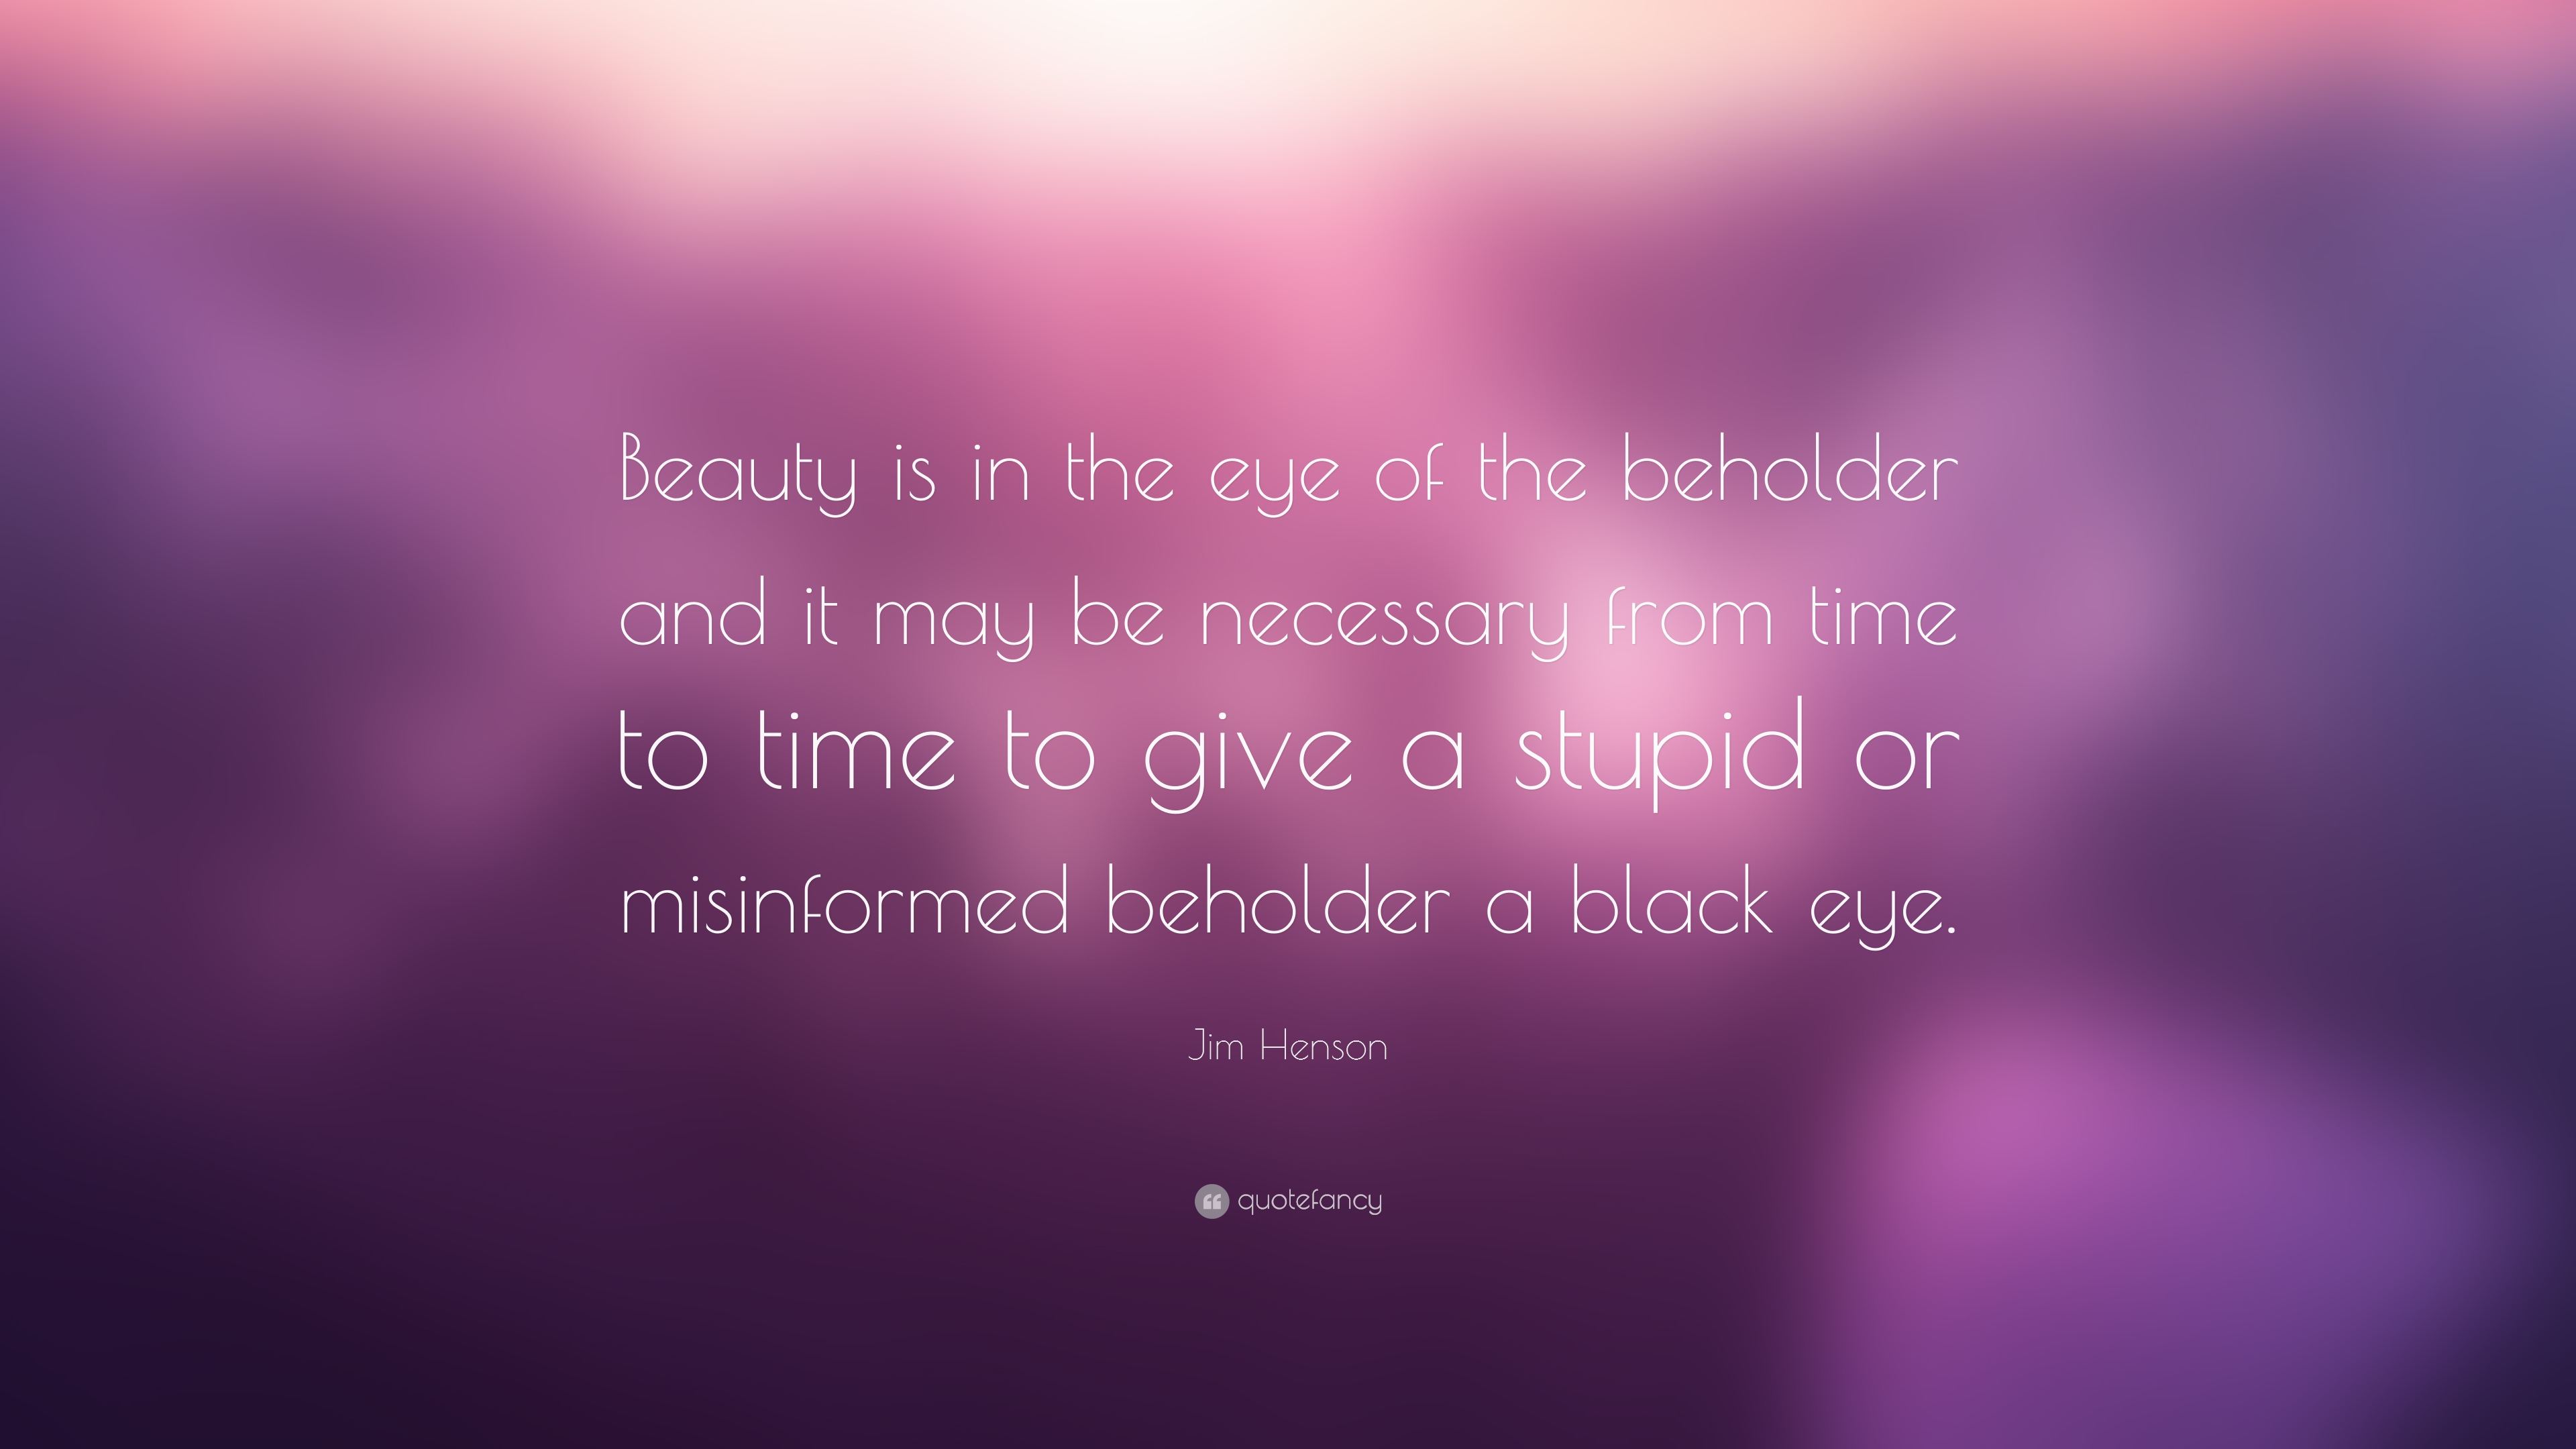 Jim Henson Quote Beauty Is In The Eye Of The Beholder And It May